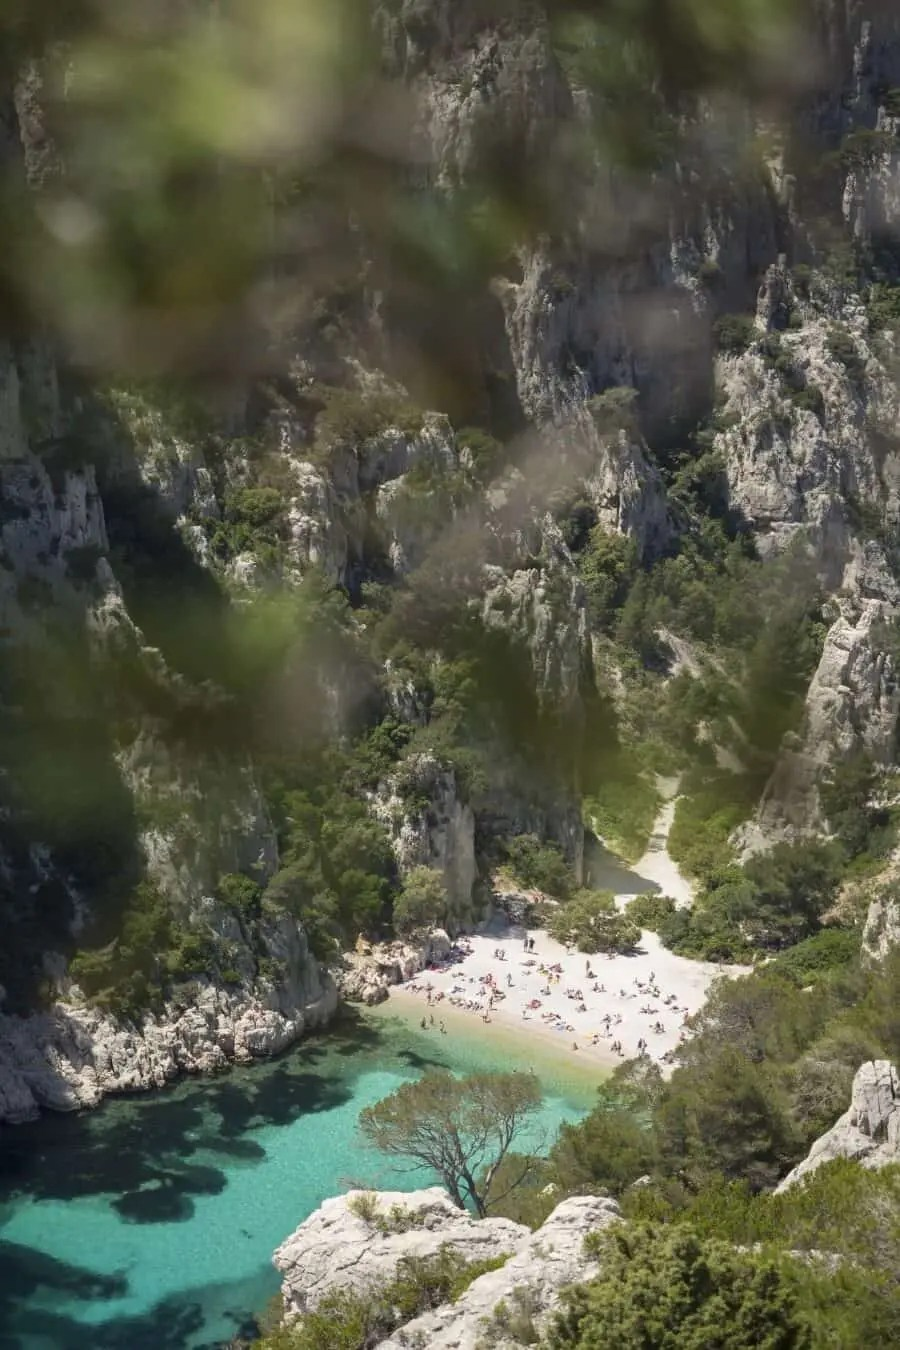 Location Canoe Cassis Hiking To Calanque D En Vau From Cassis France The Wandering